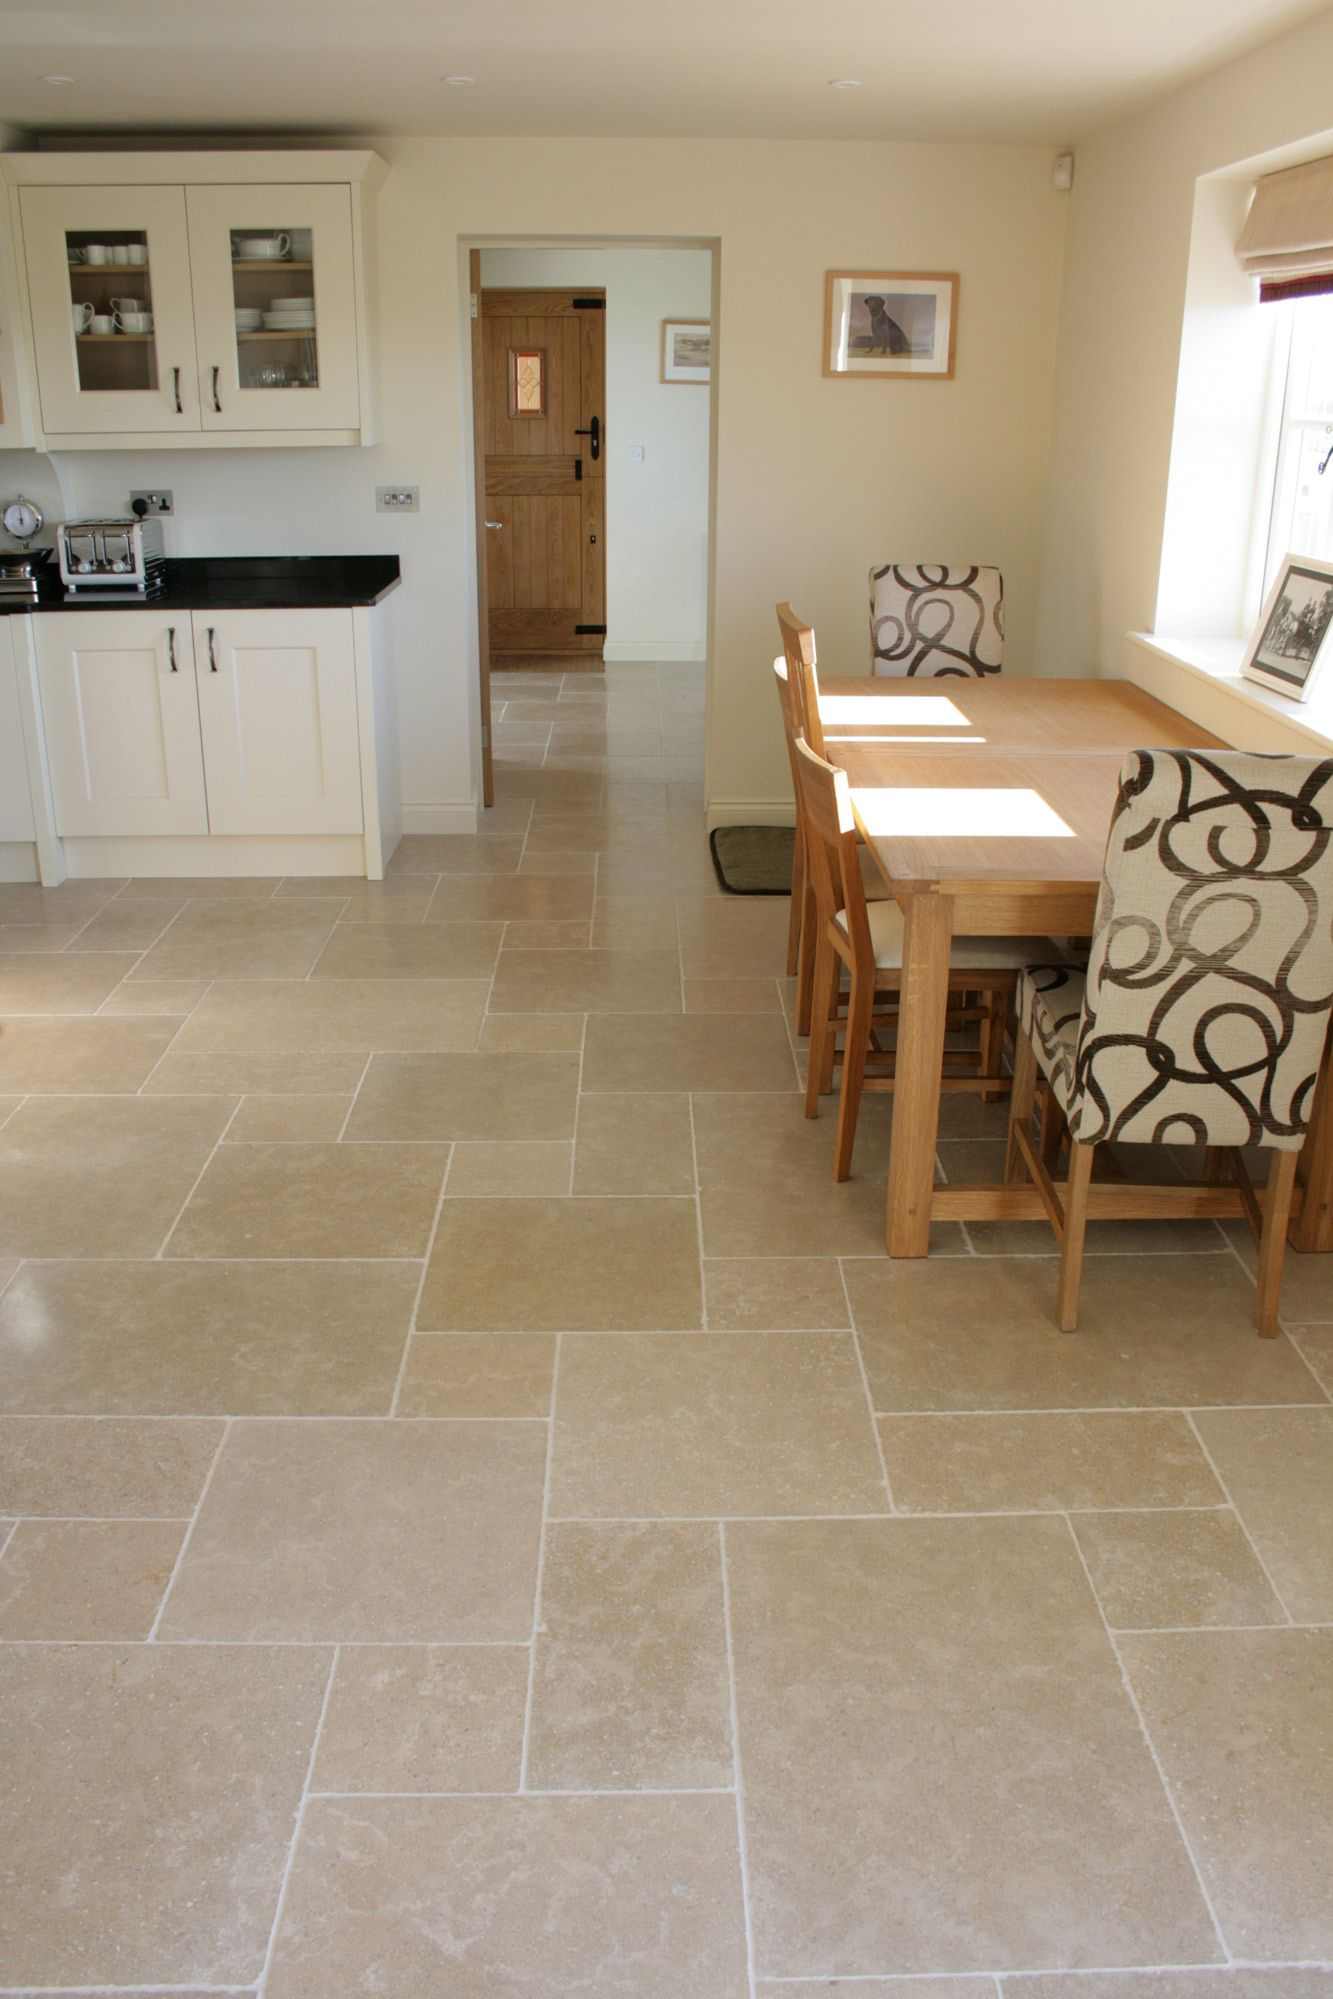 Travertine Kitchen Floor Tiles Dijon Tumbled Limestone Floor Tiles Large Pattern Mrs Bucknall